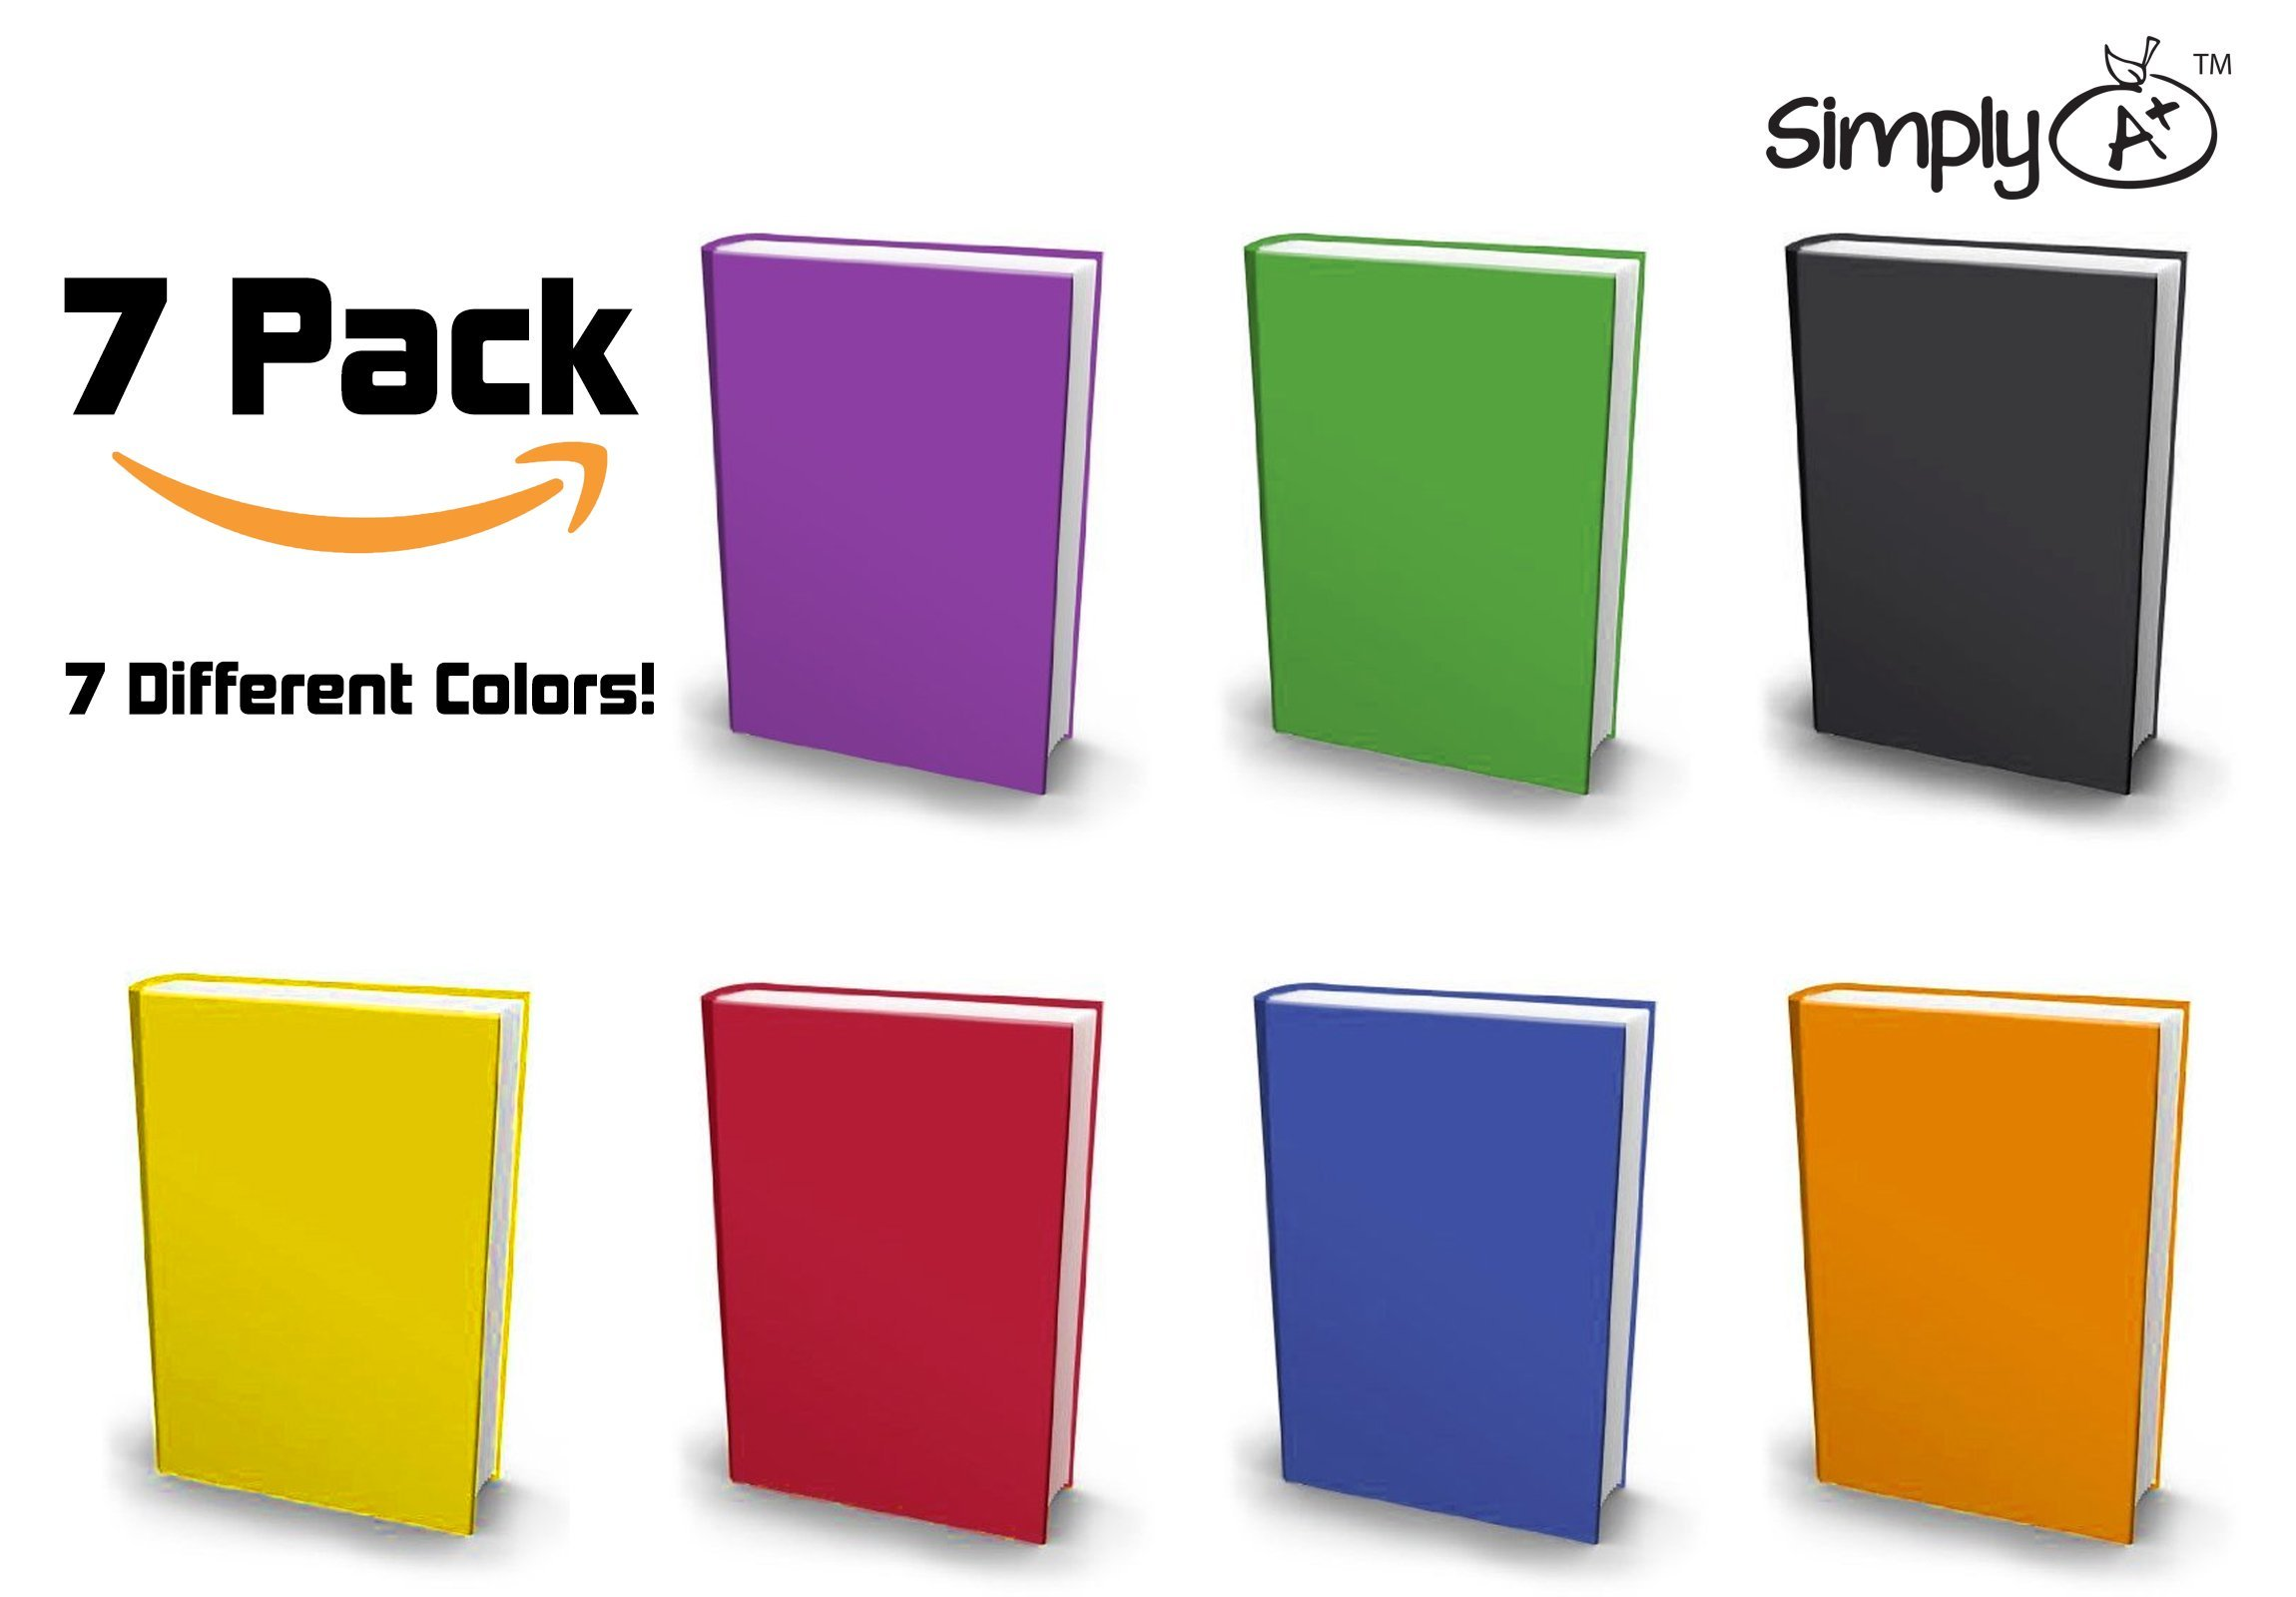 Simply A+ Stretchable Book Covers - Jumbo Stretchy Fabric Book Socks for Hardcover Textbooks, Schoolbooks - 7 Color Variety Pack